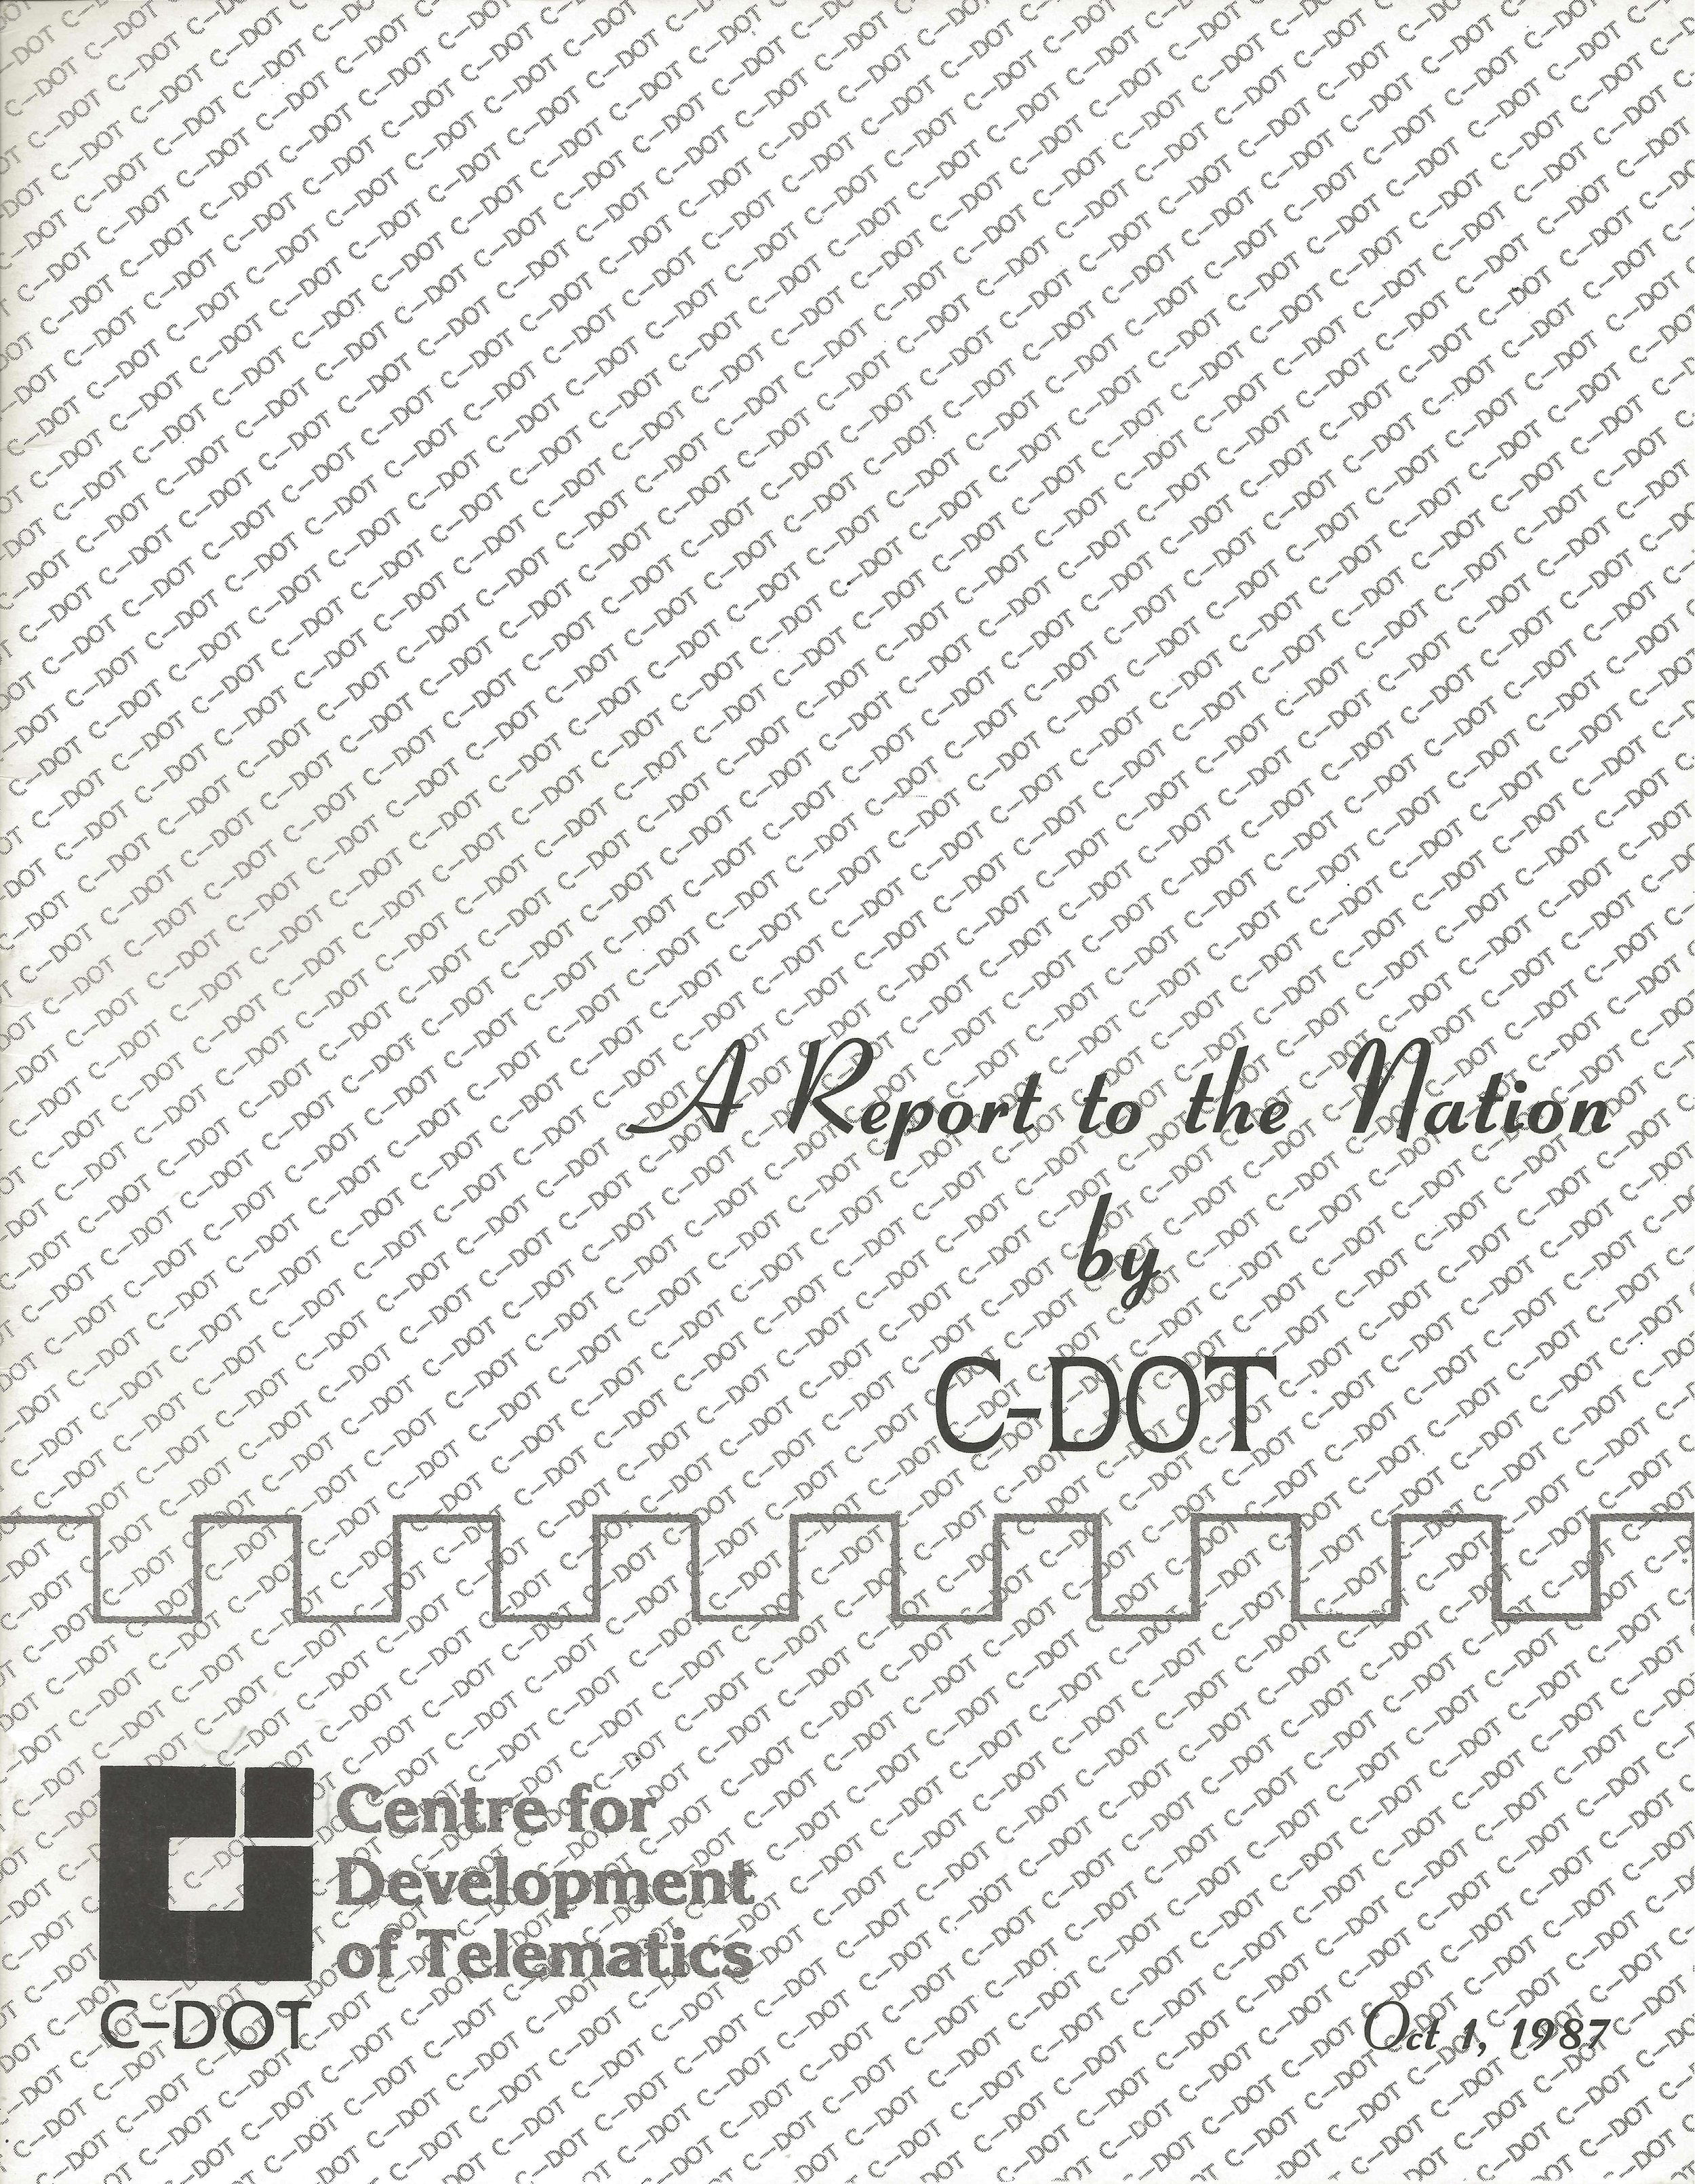 C-DOT A report to the National OCT 1 1987.jpg